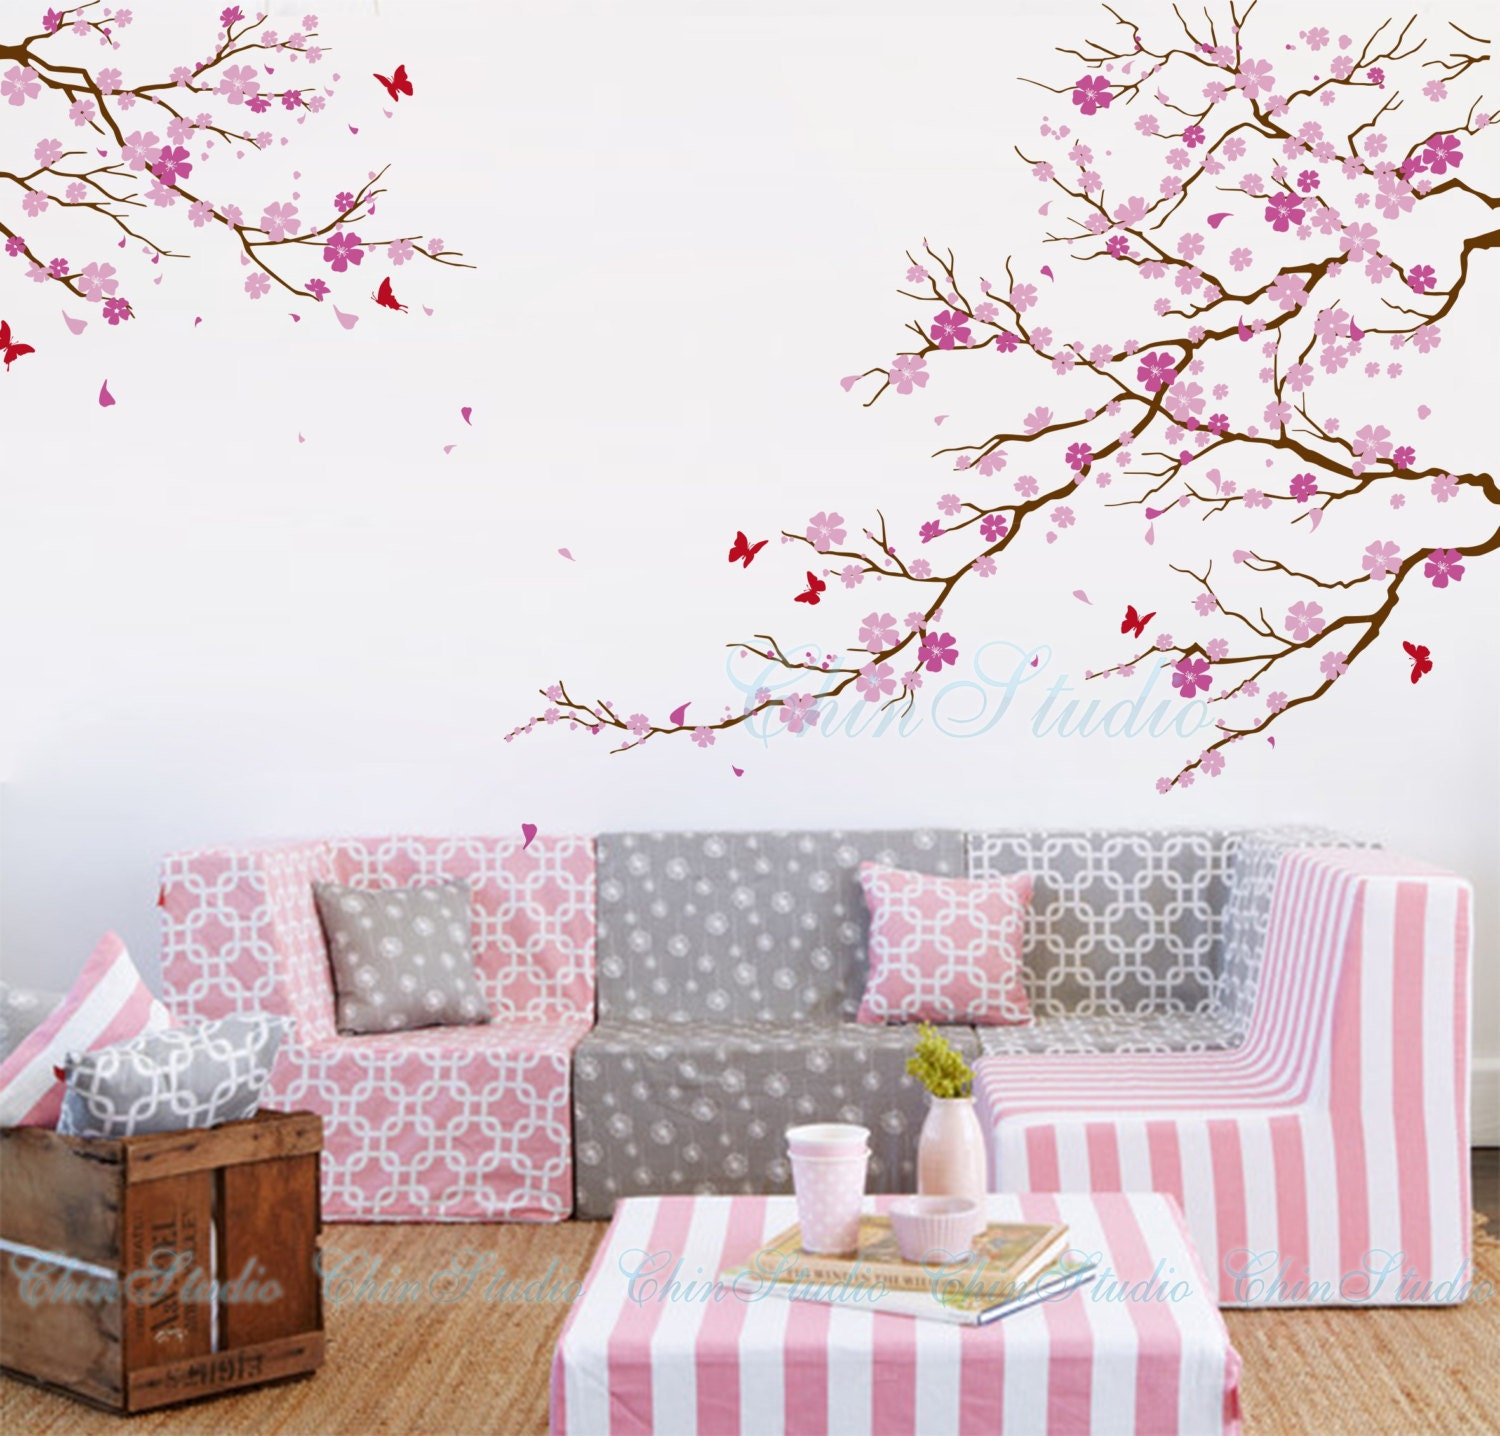 Cherry blossom tree wall decals with butterfly wall by for Cherry blossom tree wall mural